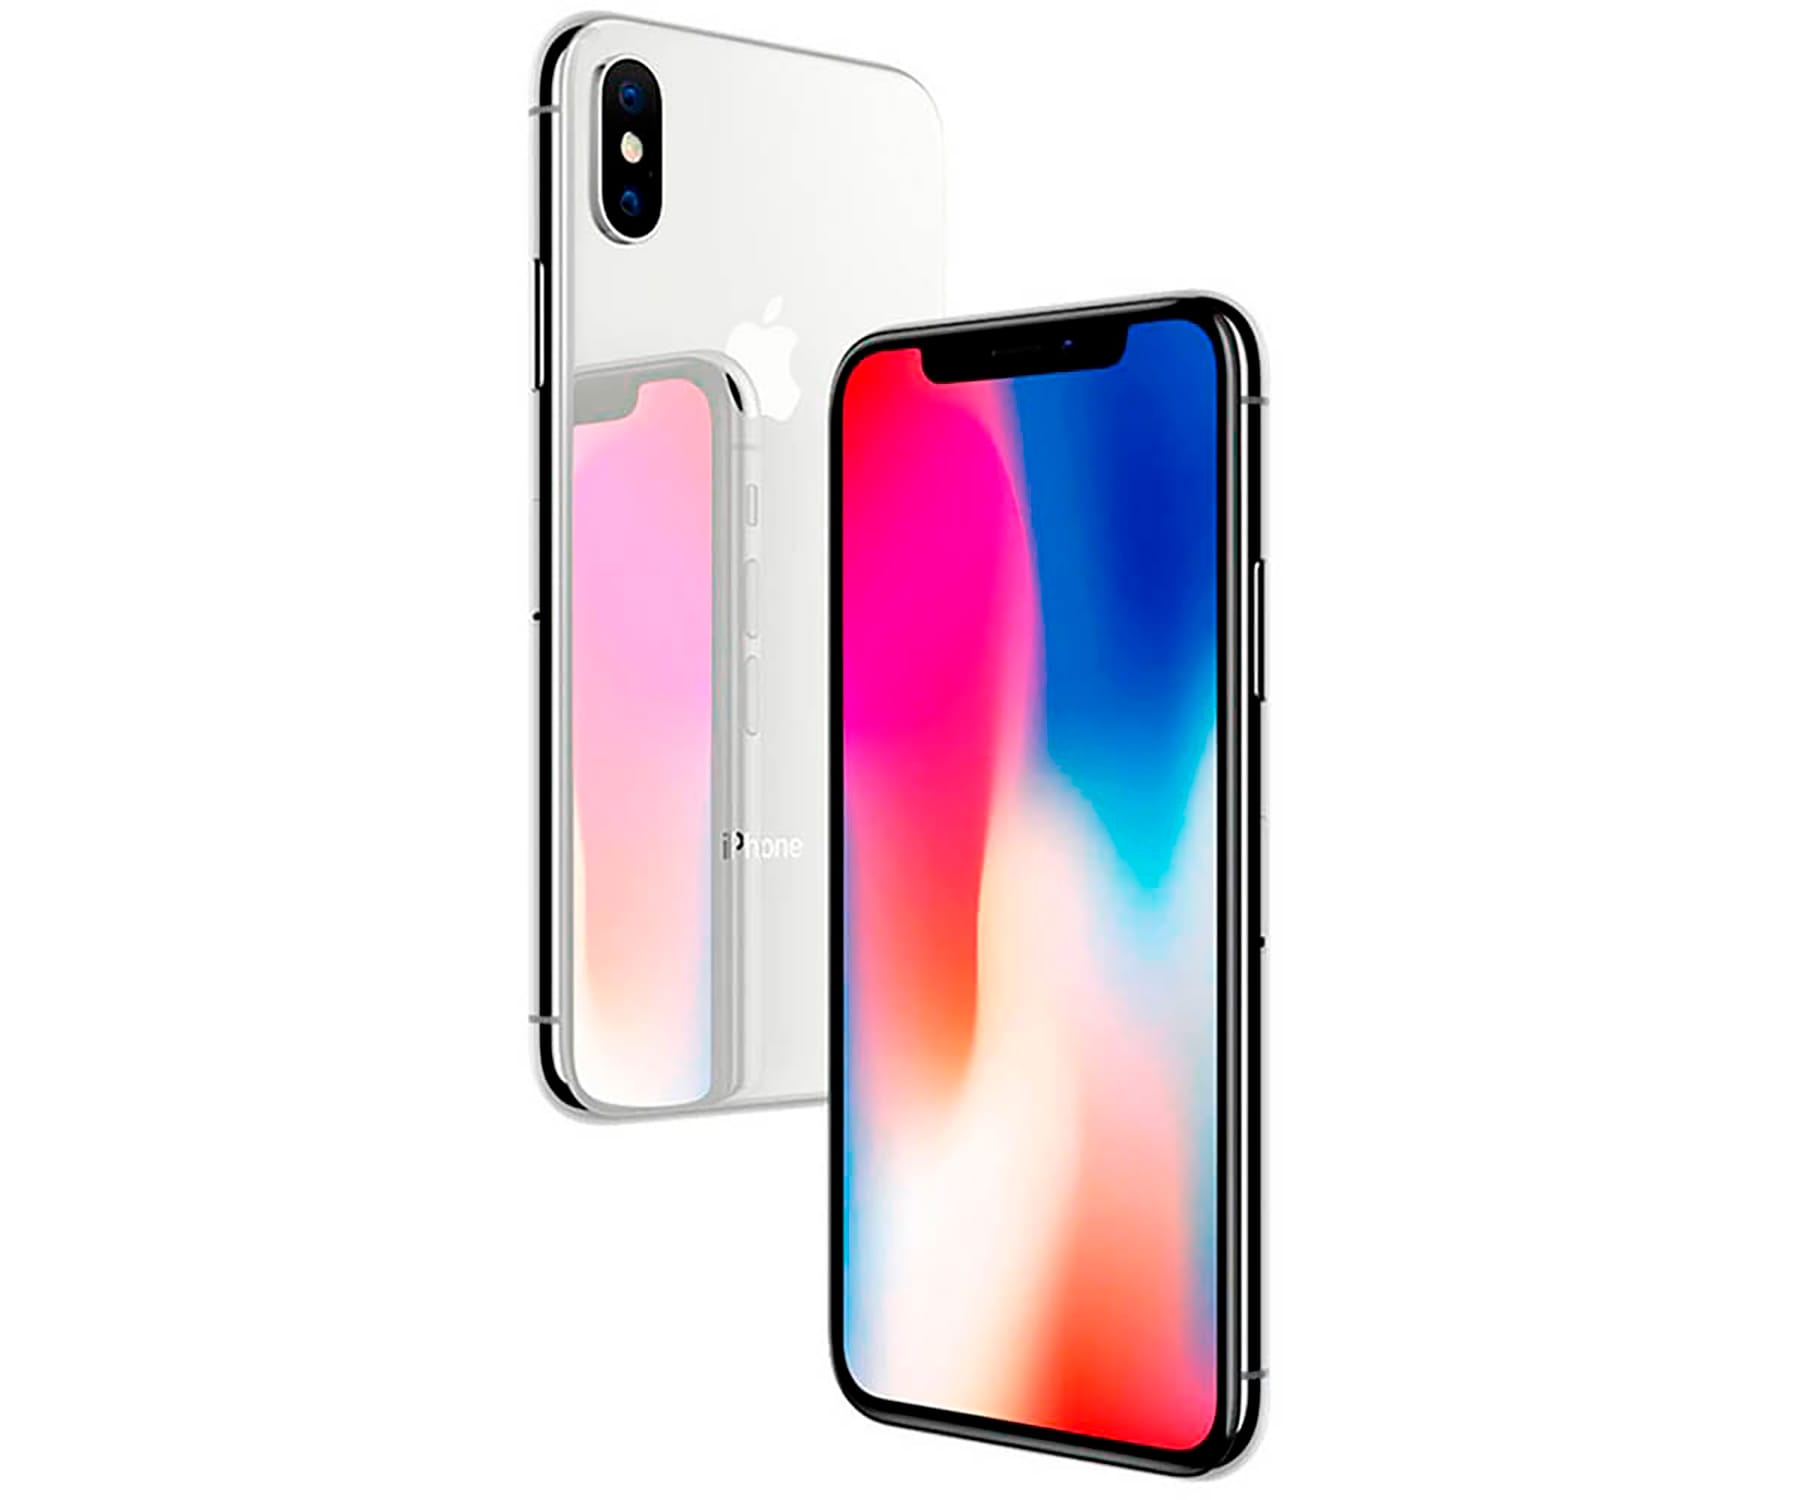 APPLE IPHONE X 256GB PLATA REACONDICIONADO CPO MÓVIL 4G 5.8'' SUPER RETINA OLED HDR/6CORE/256GB/3GB RAM/12MP+12MP/7MP